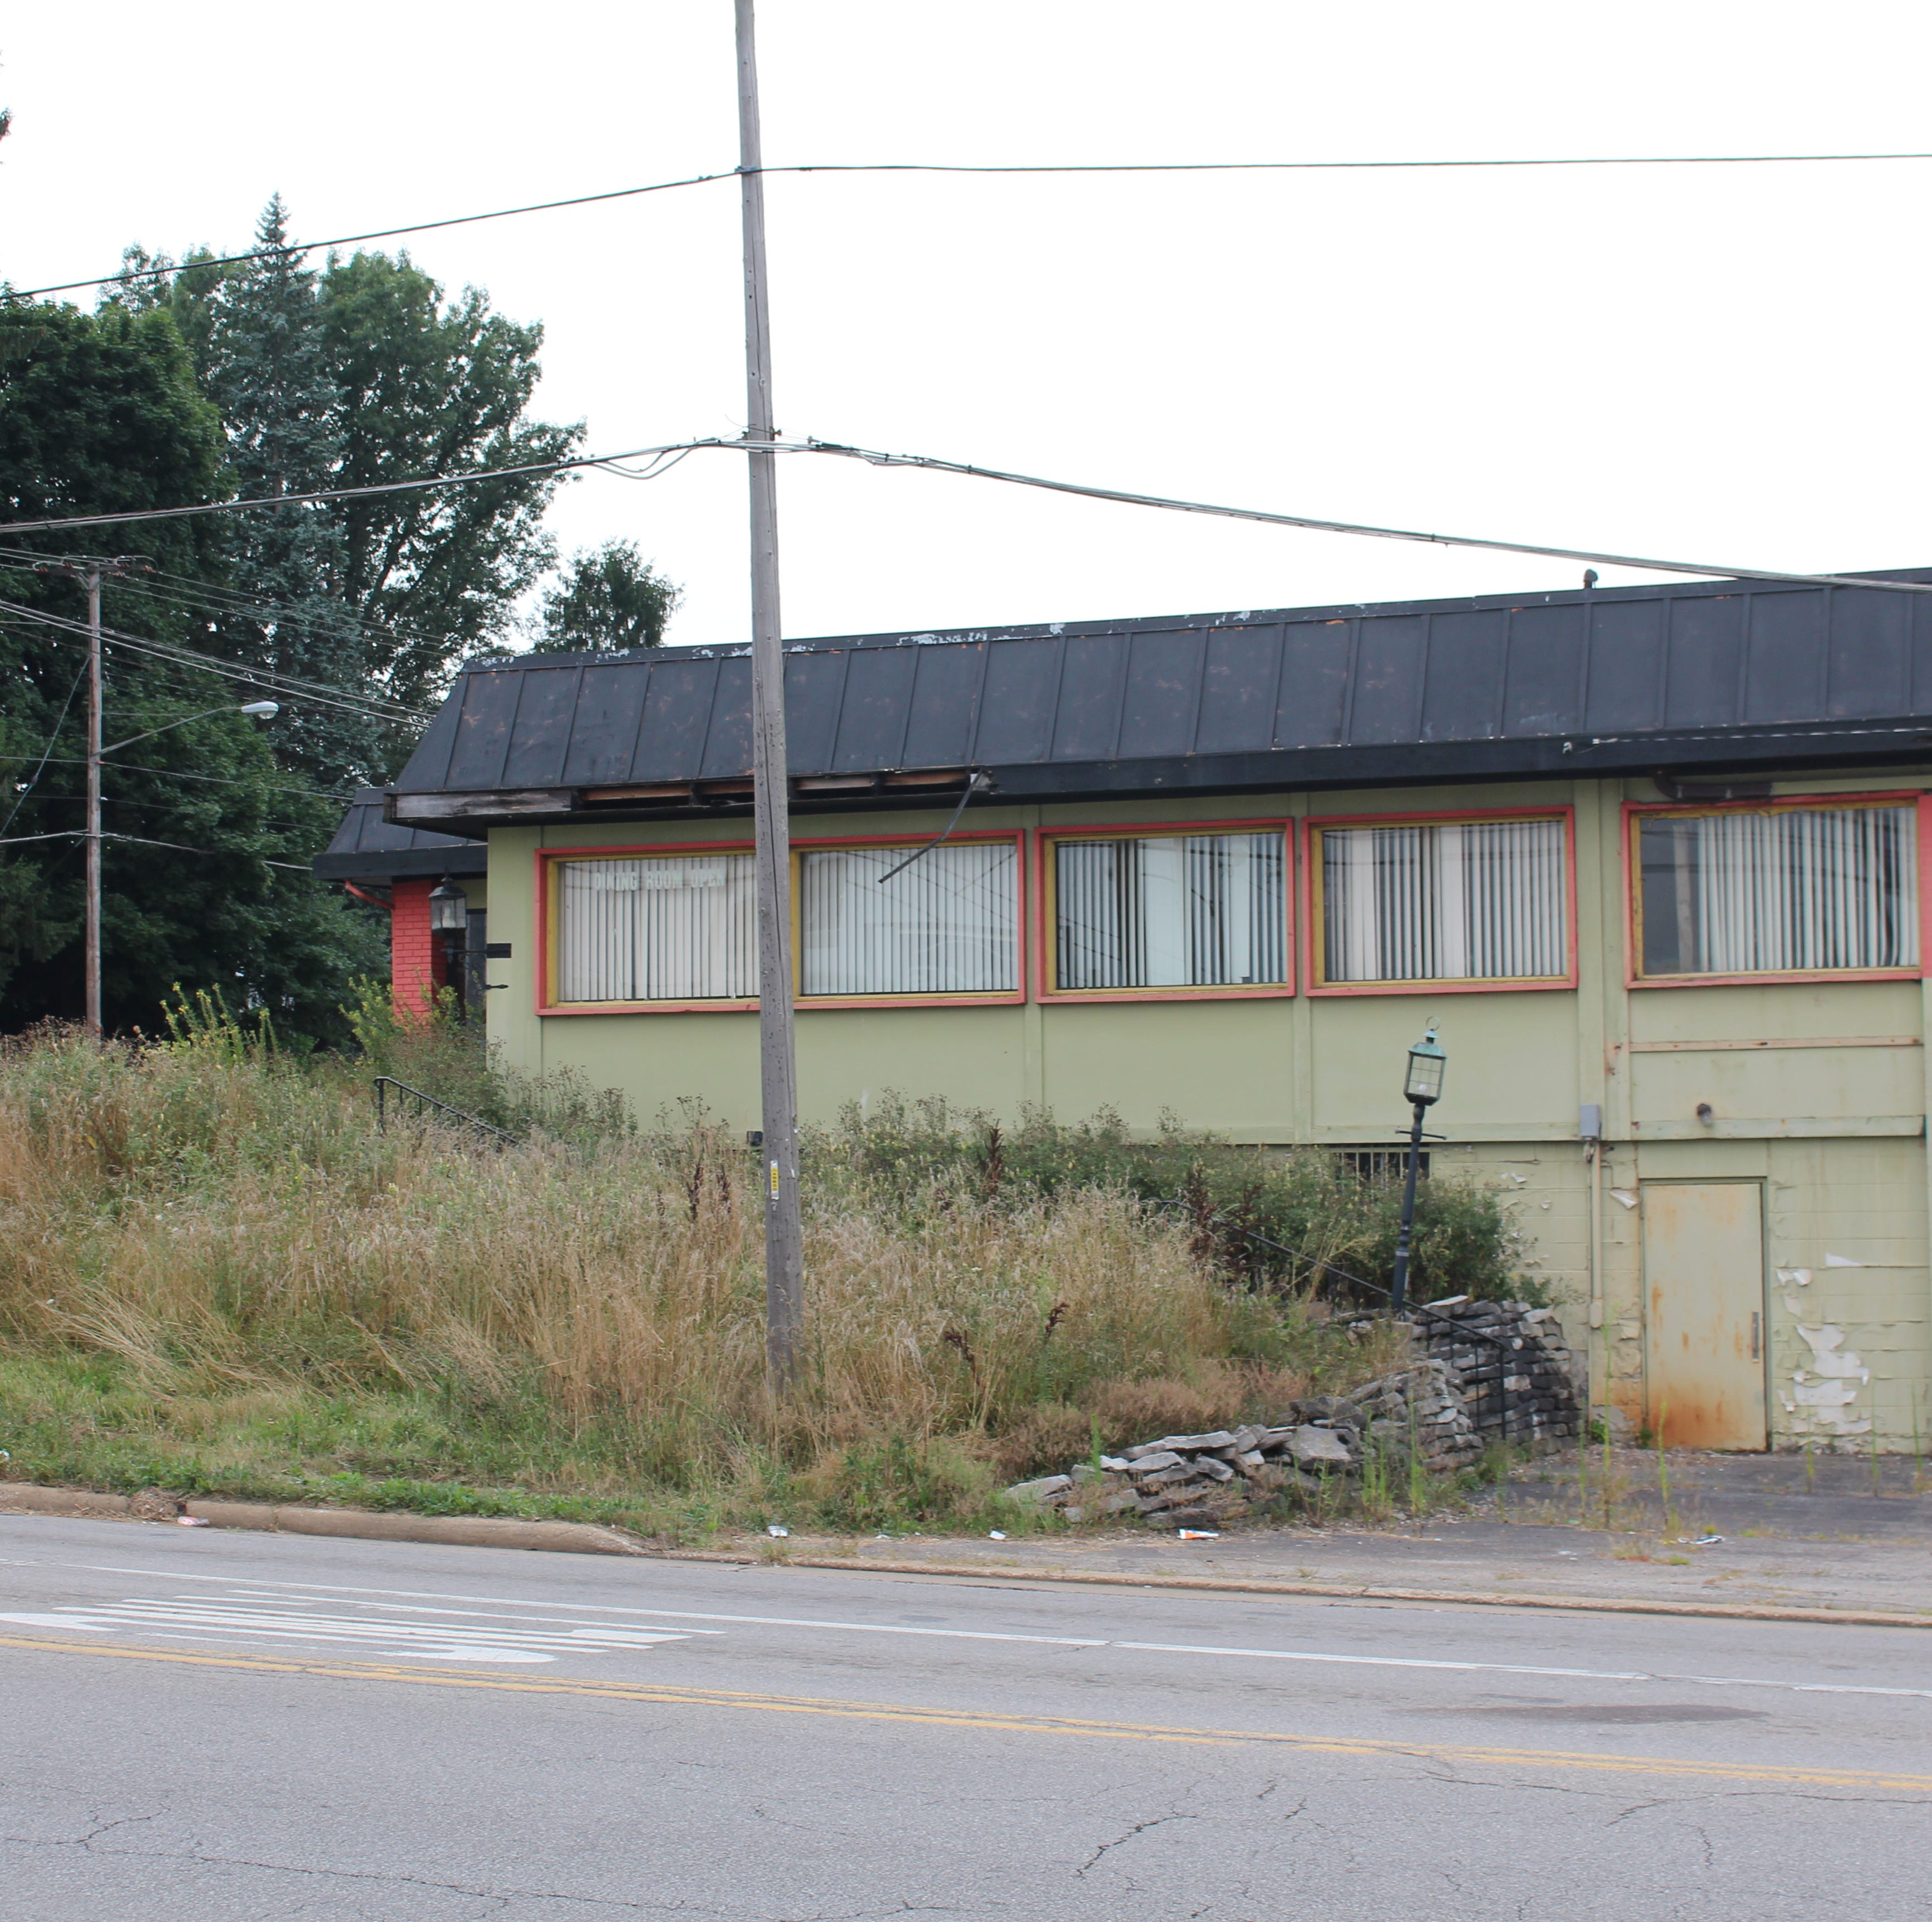 Ontario will demolish former East of Chicago building, house